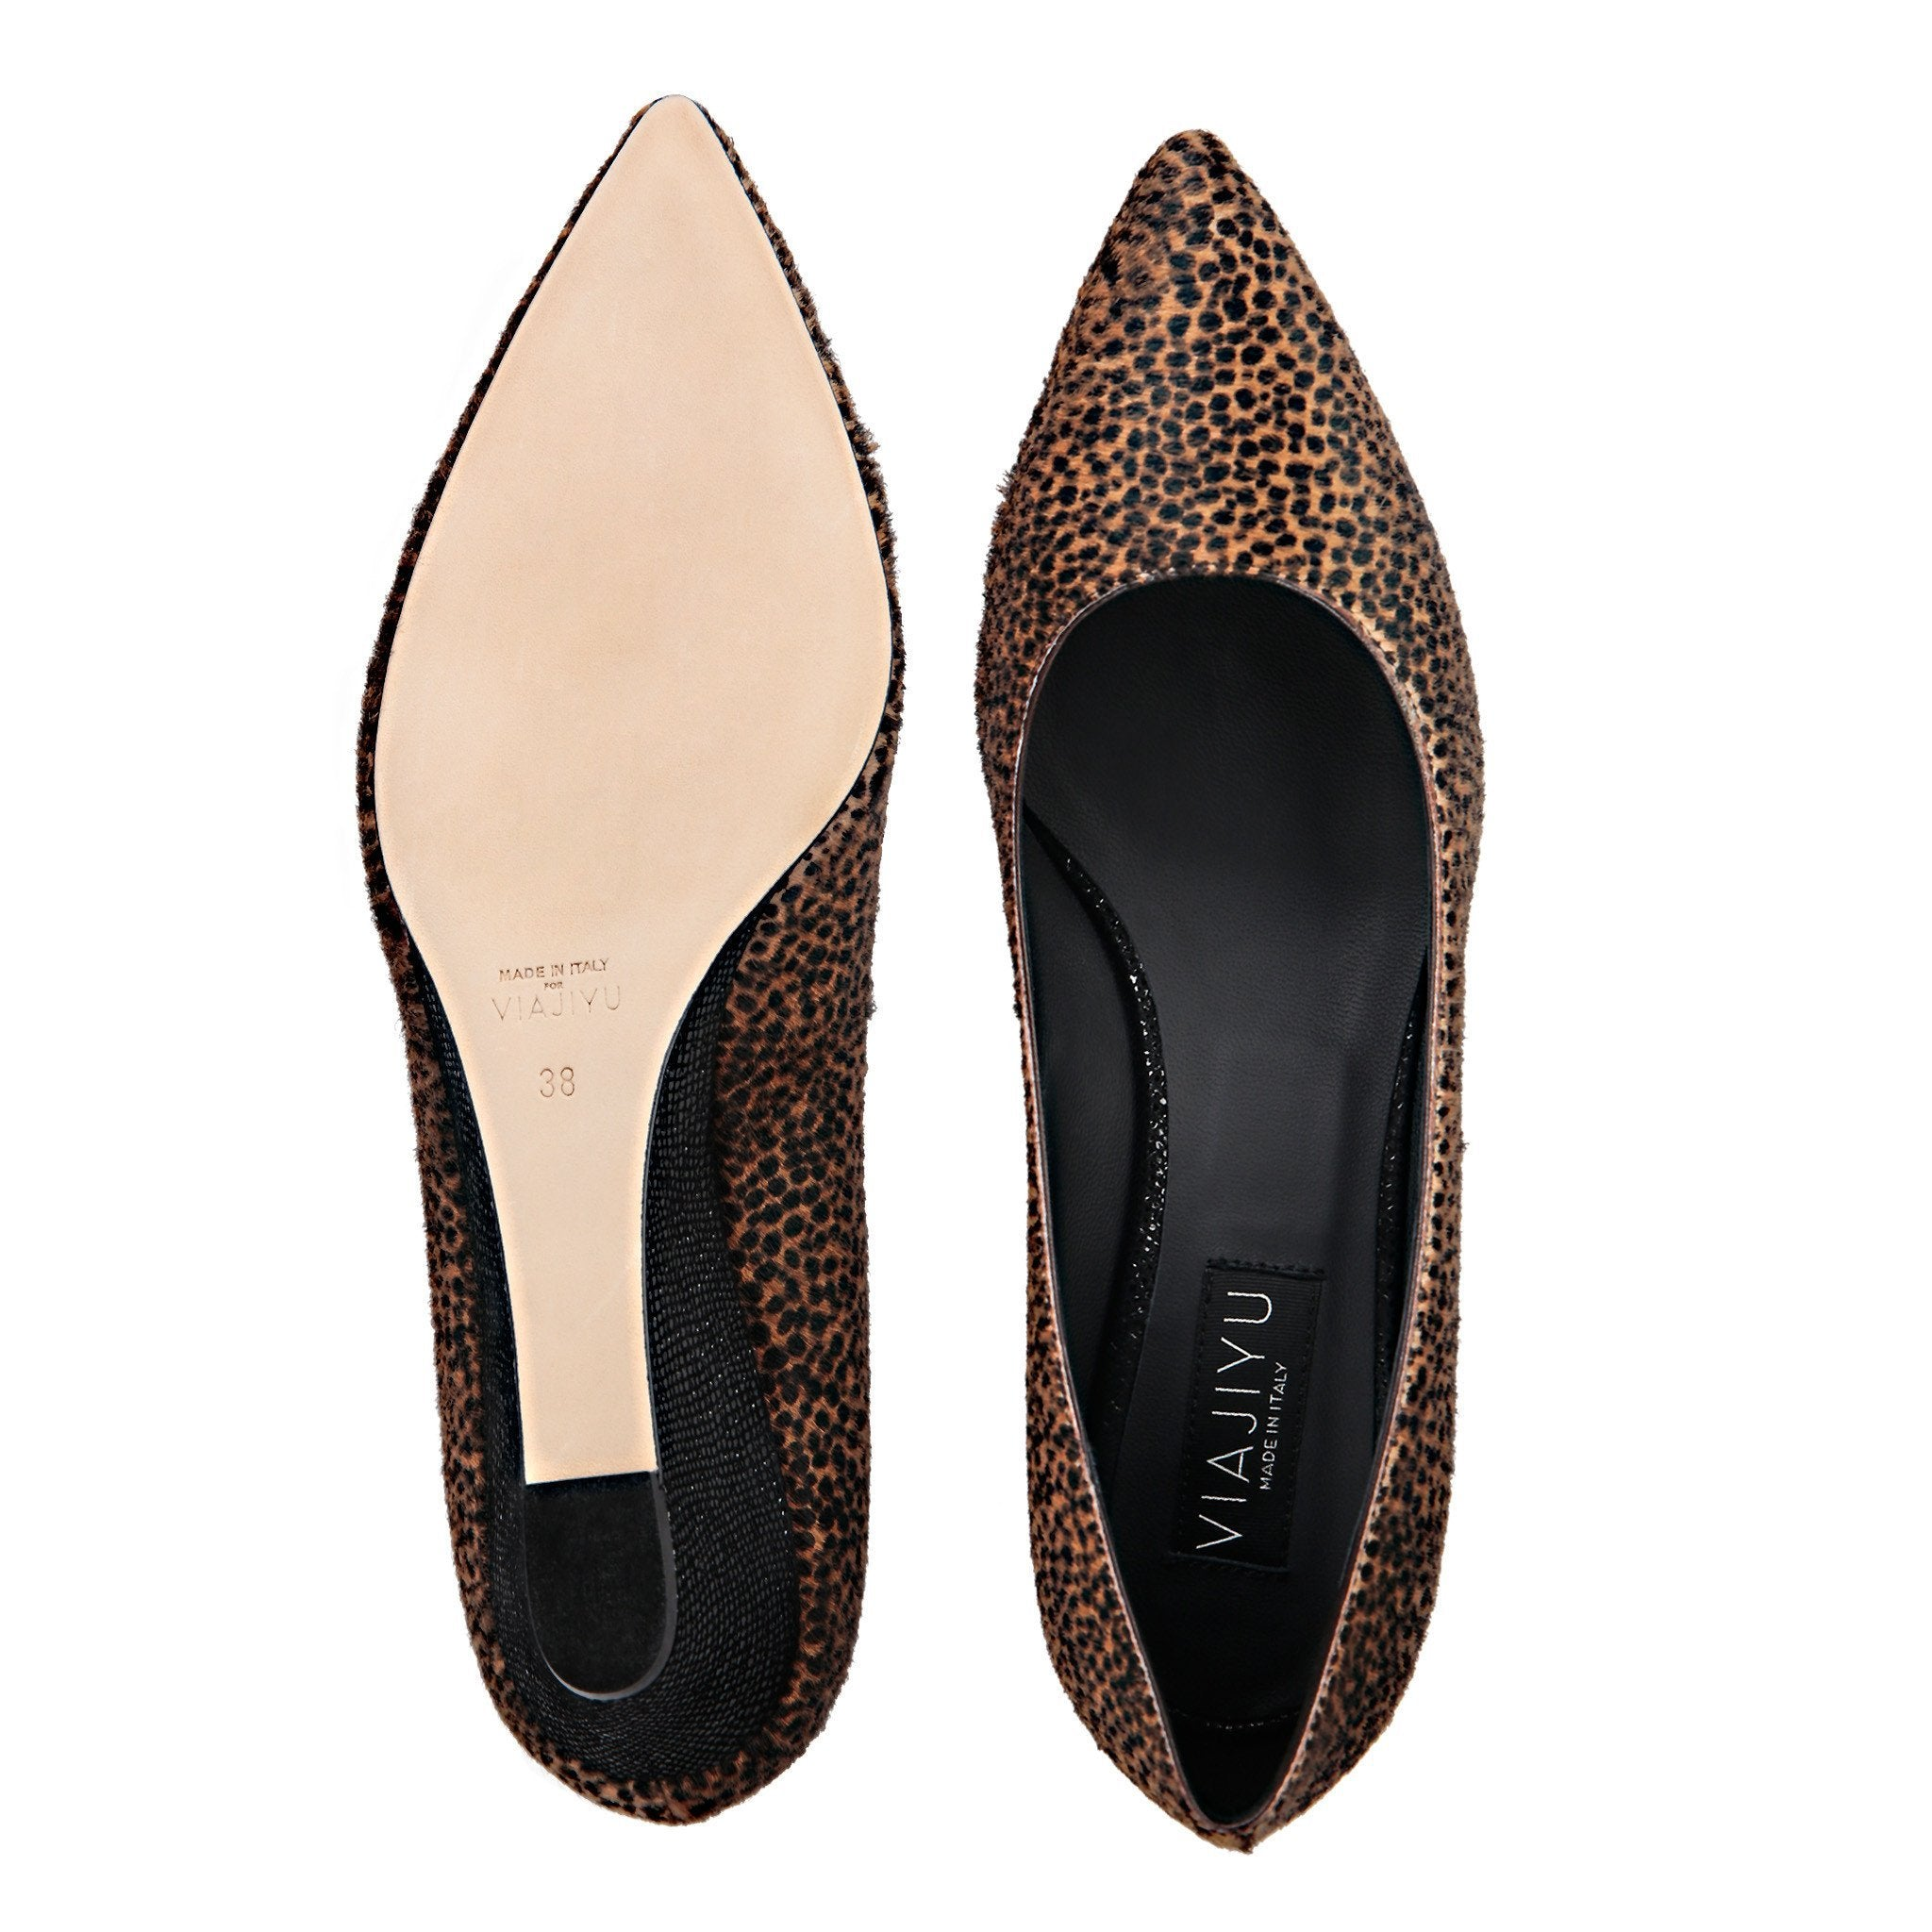 TRENTO - Calf Hair Orange Cheetah + Karung Nero, VIAJIYU - Women's Hand Made Sustainable Luxury Shoes. Made in Italy. Made to Order.